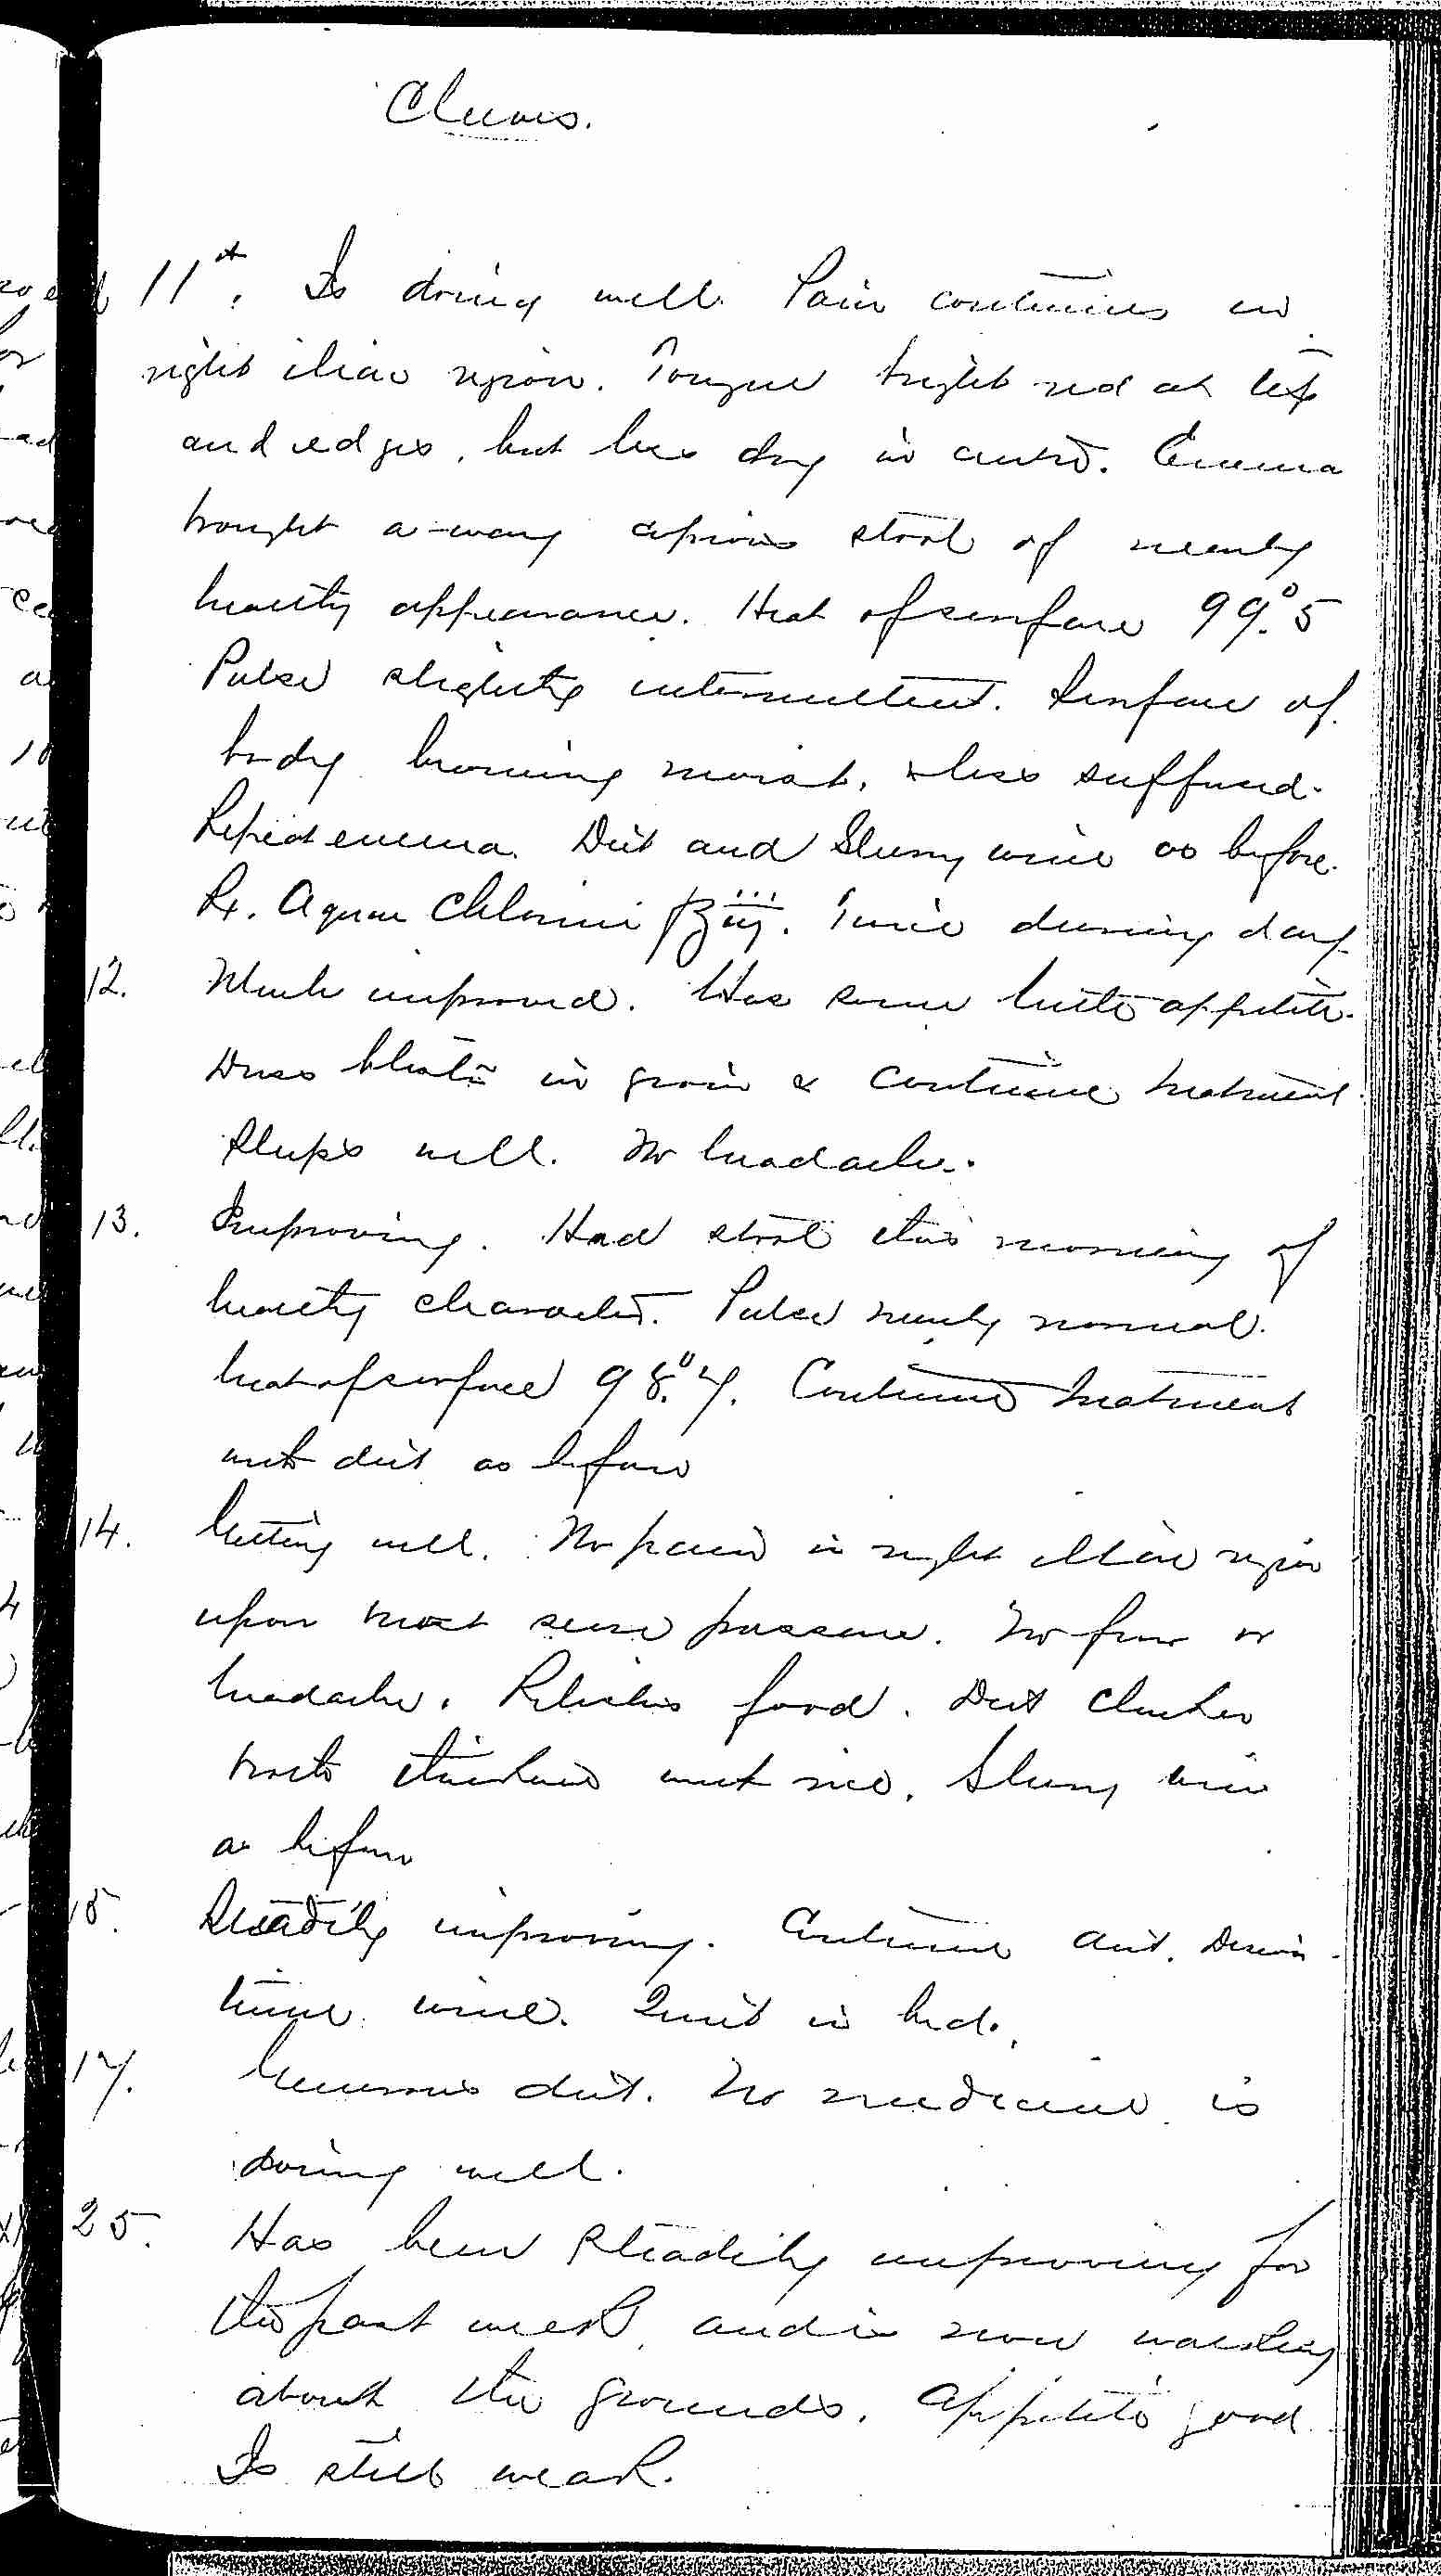 Entry for Arnold Cleeves (page 3 of 4) in the log Hospital Tickets and Case Papers - Naval Hospital - Washington, D.C. - 1868-69